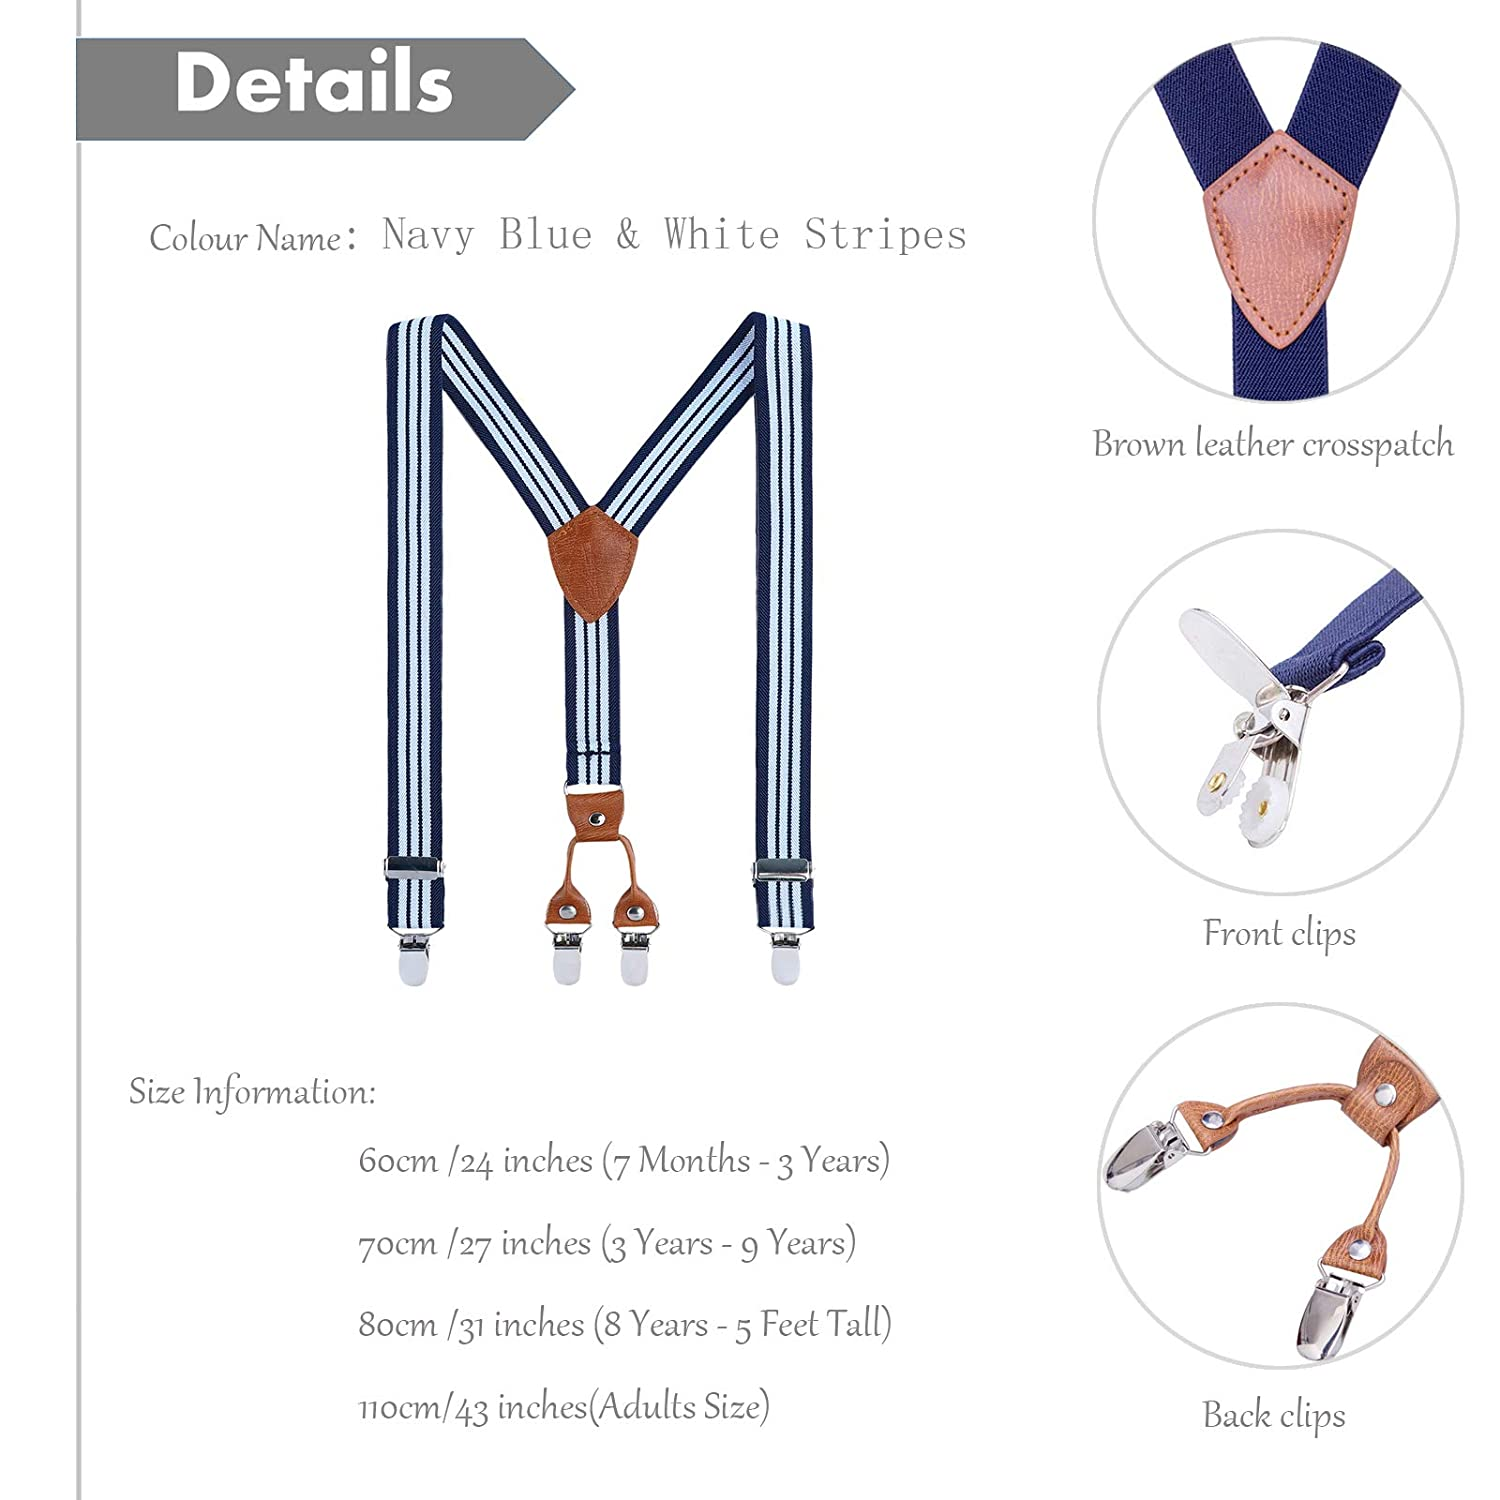 Navy blue,27 inches 3 Years - 9 Years AWAYTR Boys Men Y-back Suspender- 1 Inch Elastic Adjustable Boy Suspenders with 4 Sturdy Clips Brown leather